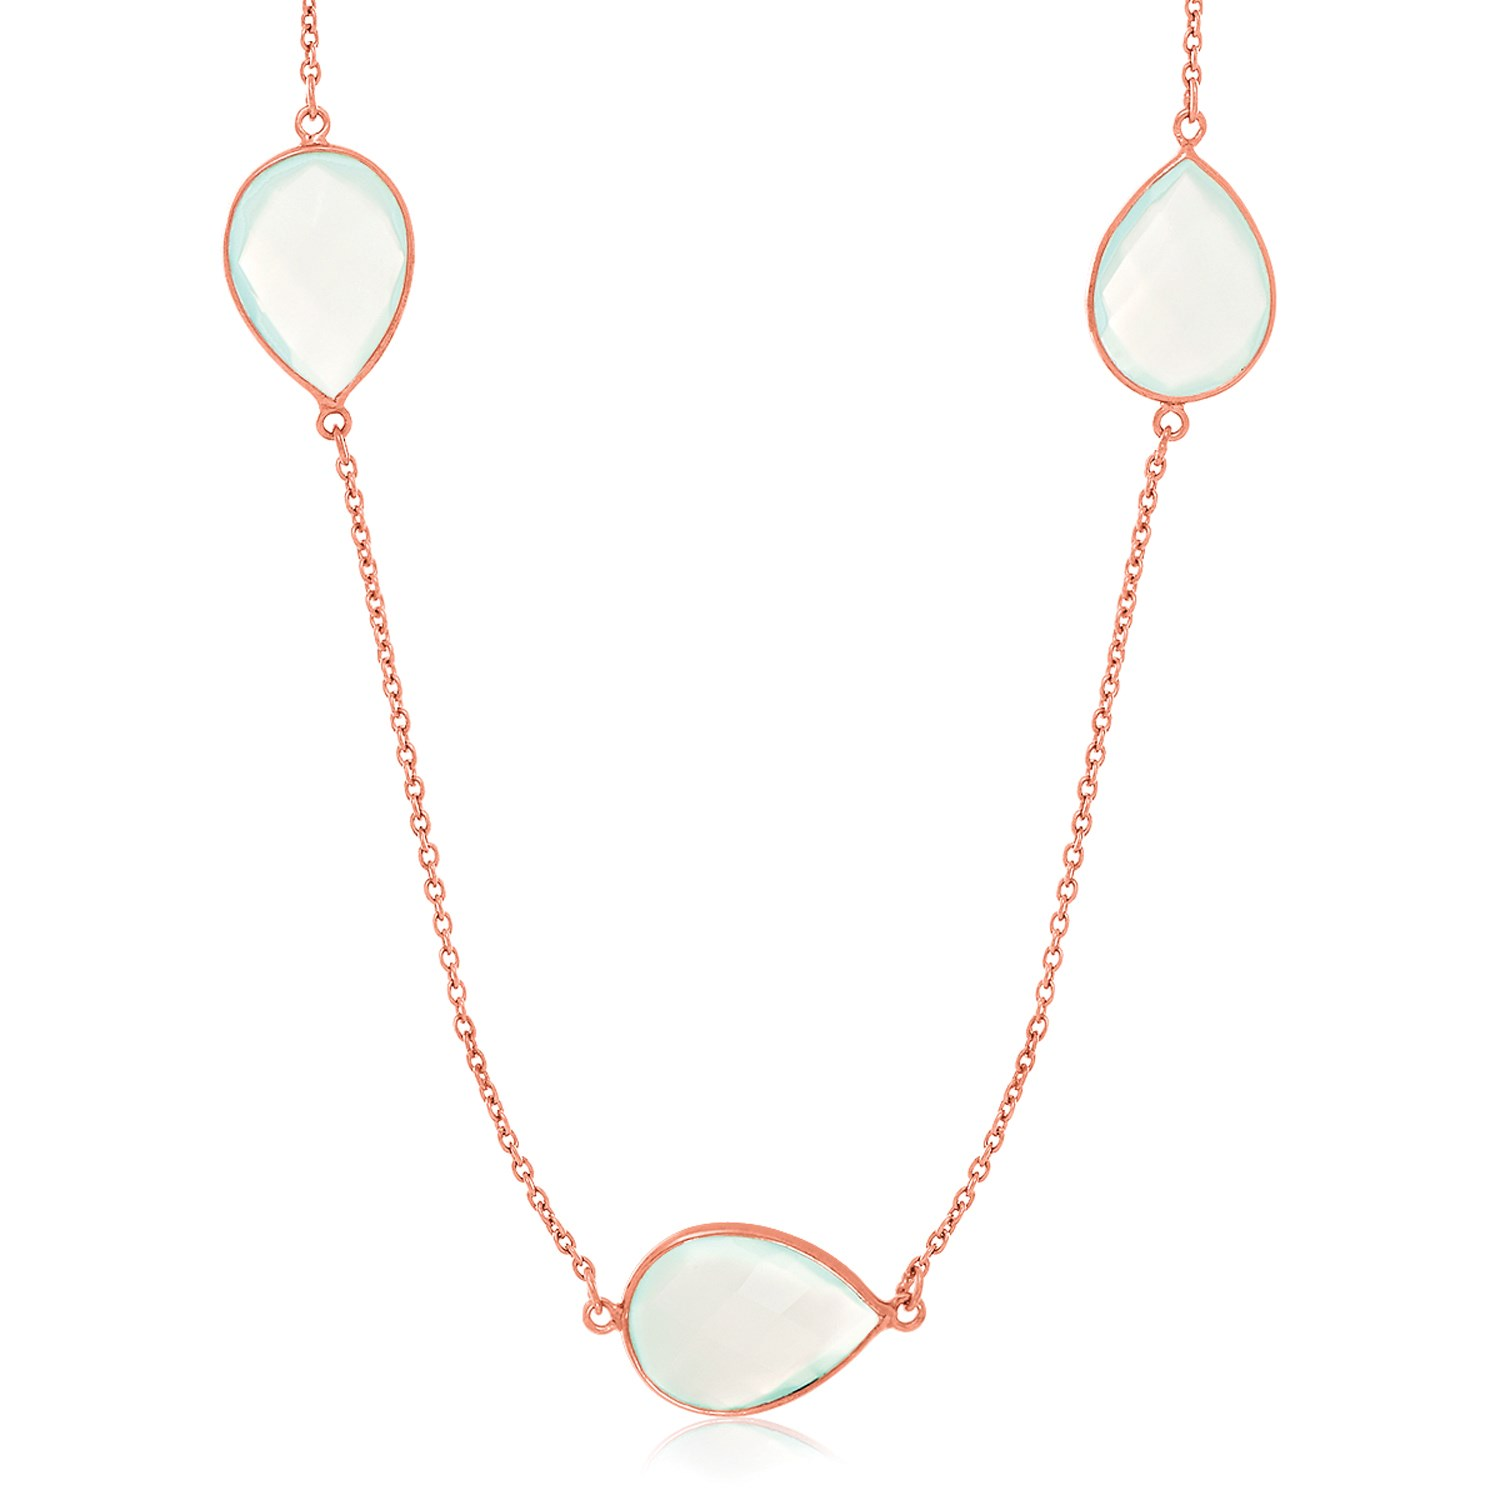 Sterling Silver Rose Gold Plated Teardrop Station Long Necklace with Aqua Chalcedony by Diamond2Deal